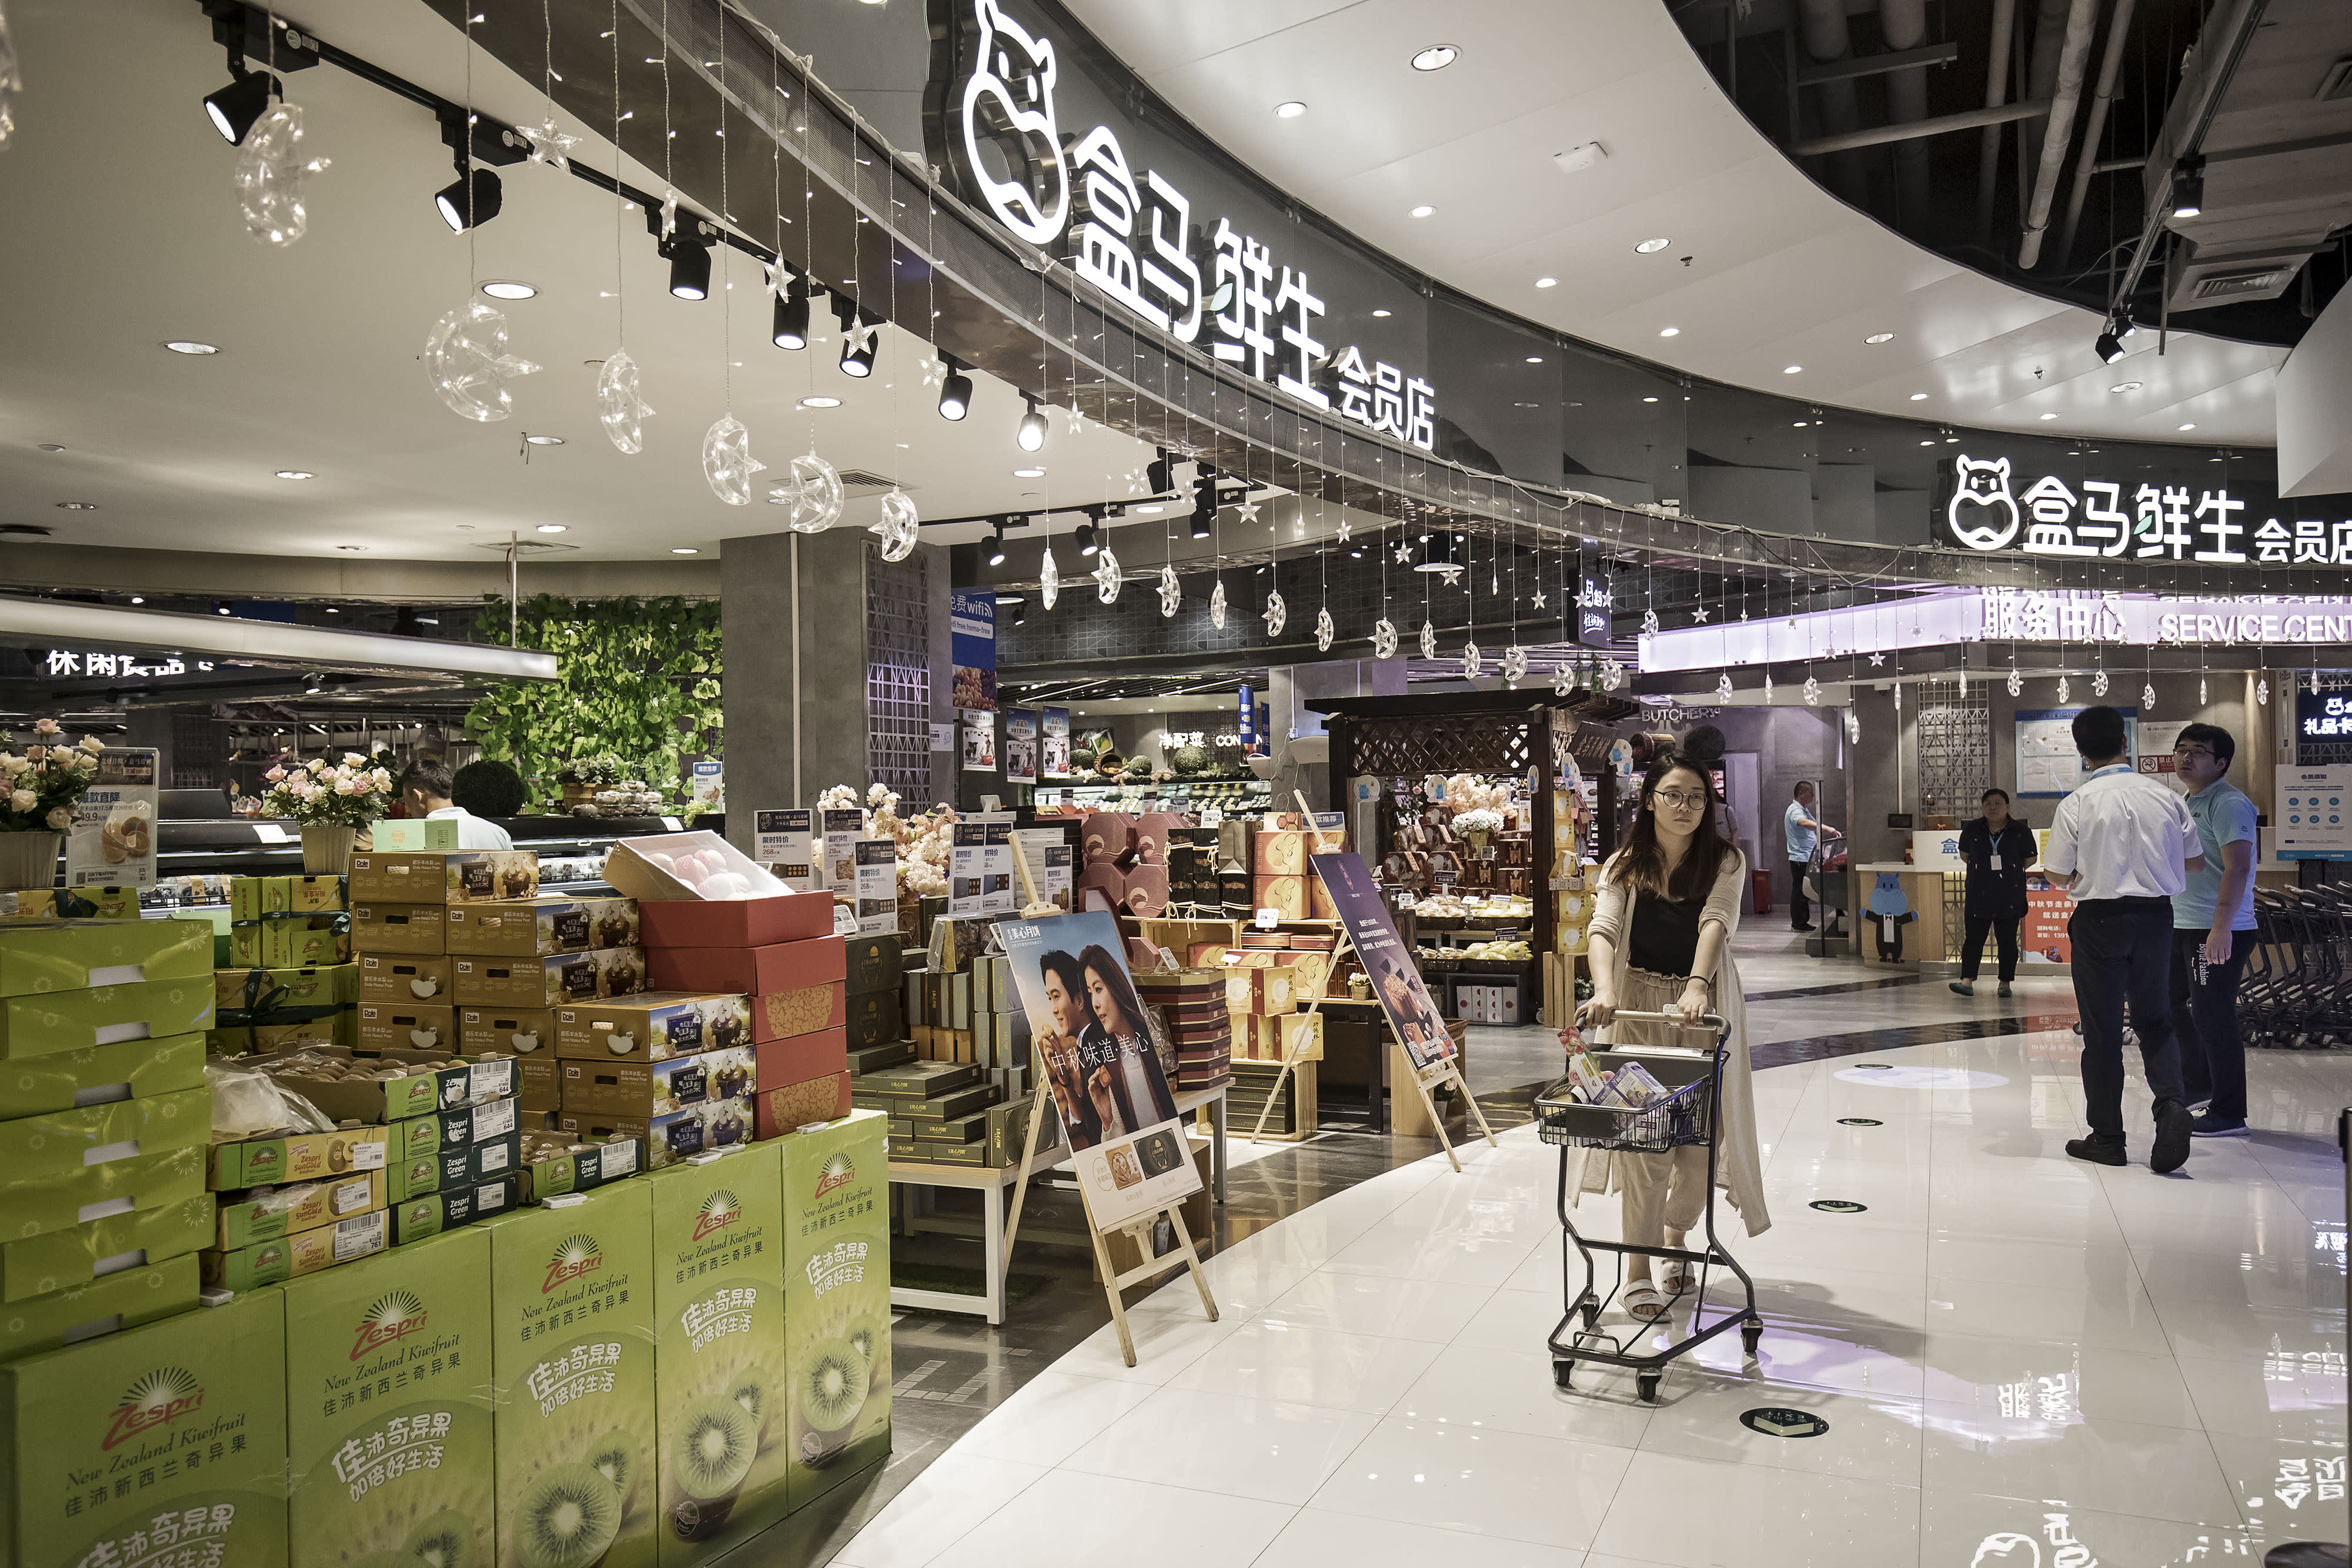 Inside Hema, Alibaba's new kind of superstore: Robots, apps and more